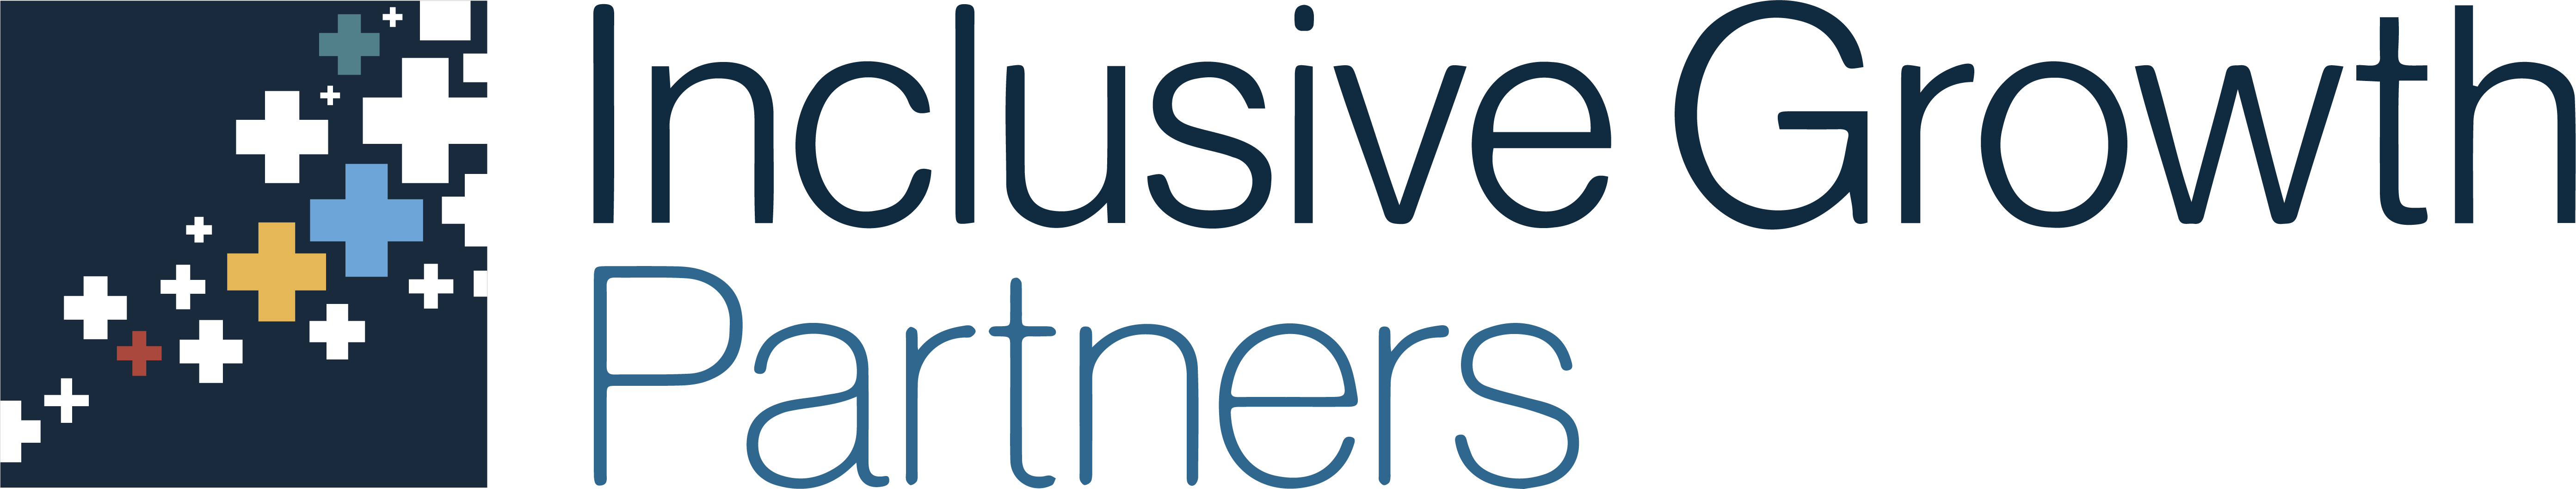 Inclusive Growth Partners Logo